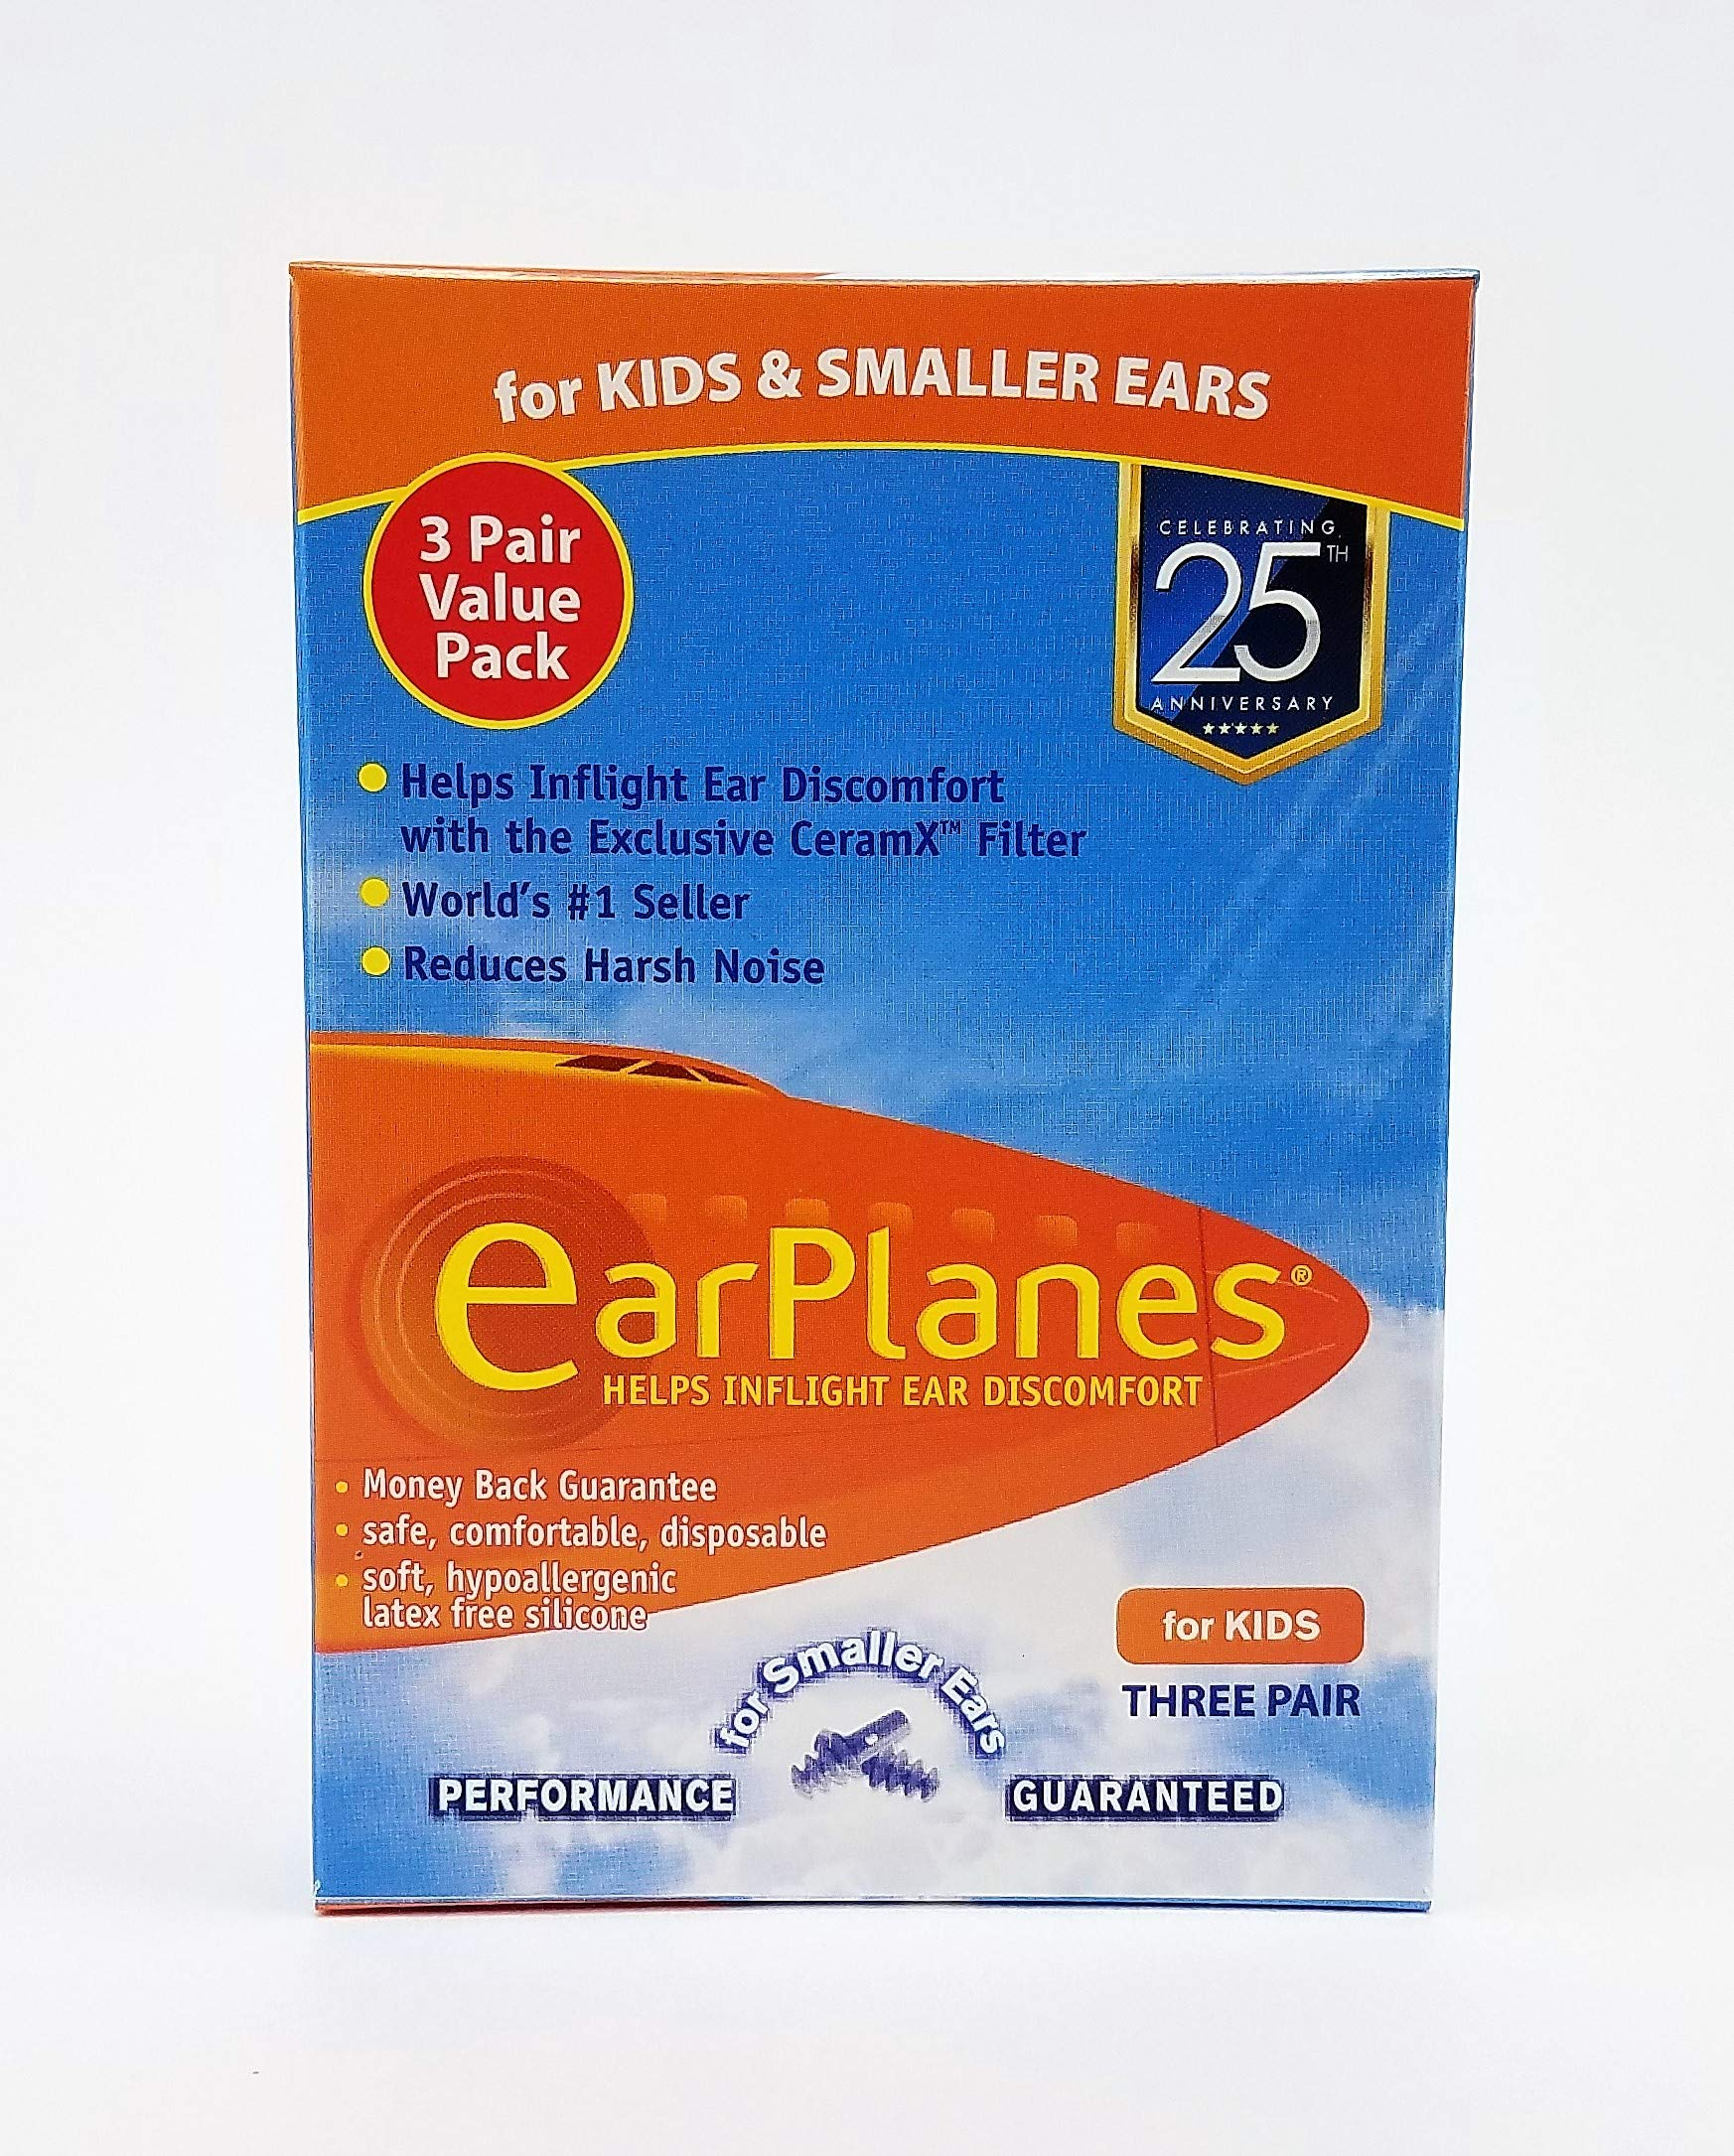 Original Children's EarPlanes by Cirrus Healthcare Ear Plugs Airplane Travel Ear Protection 3 Pair BONUS VALUE PACK by Earplanes (Image #1)